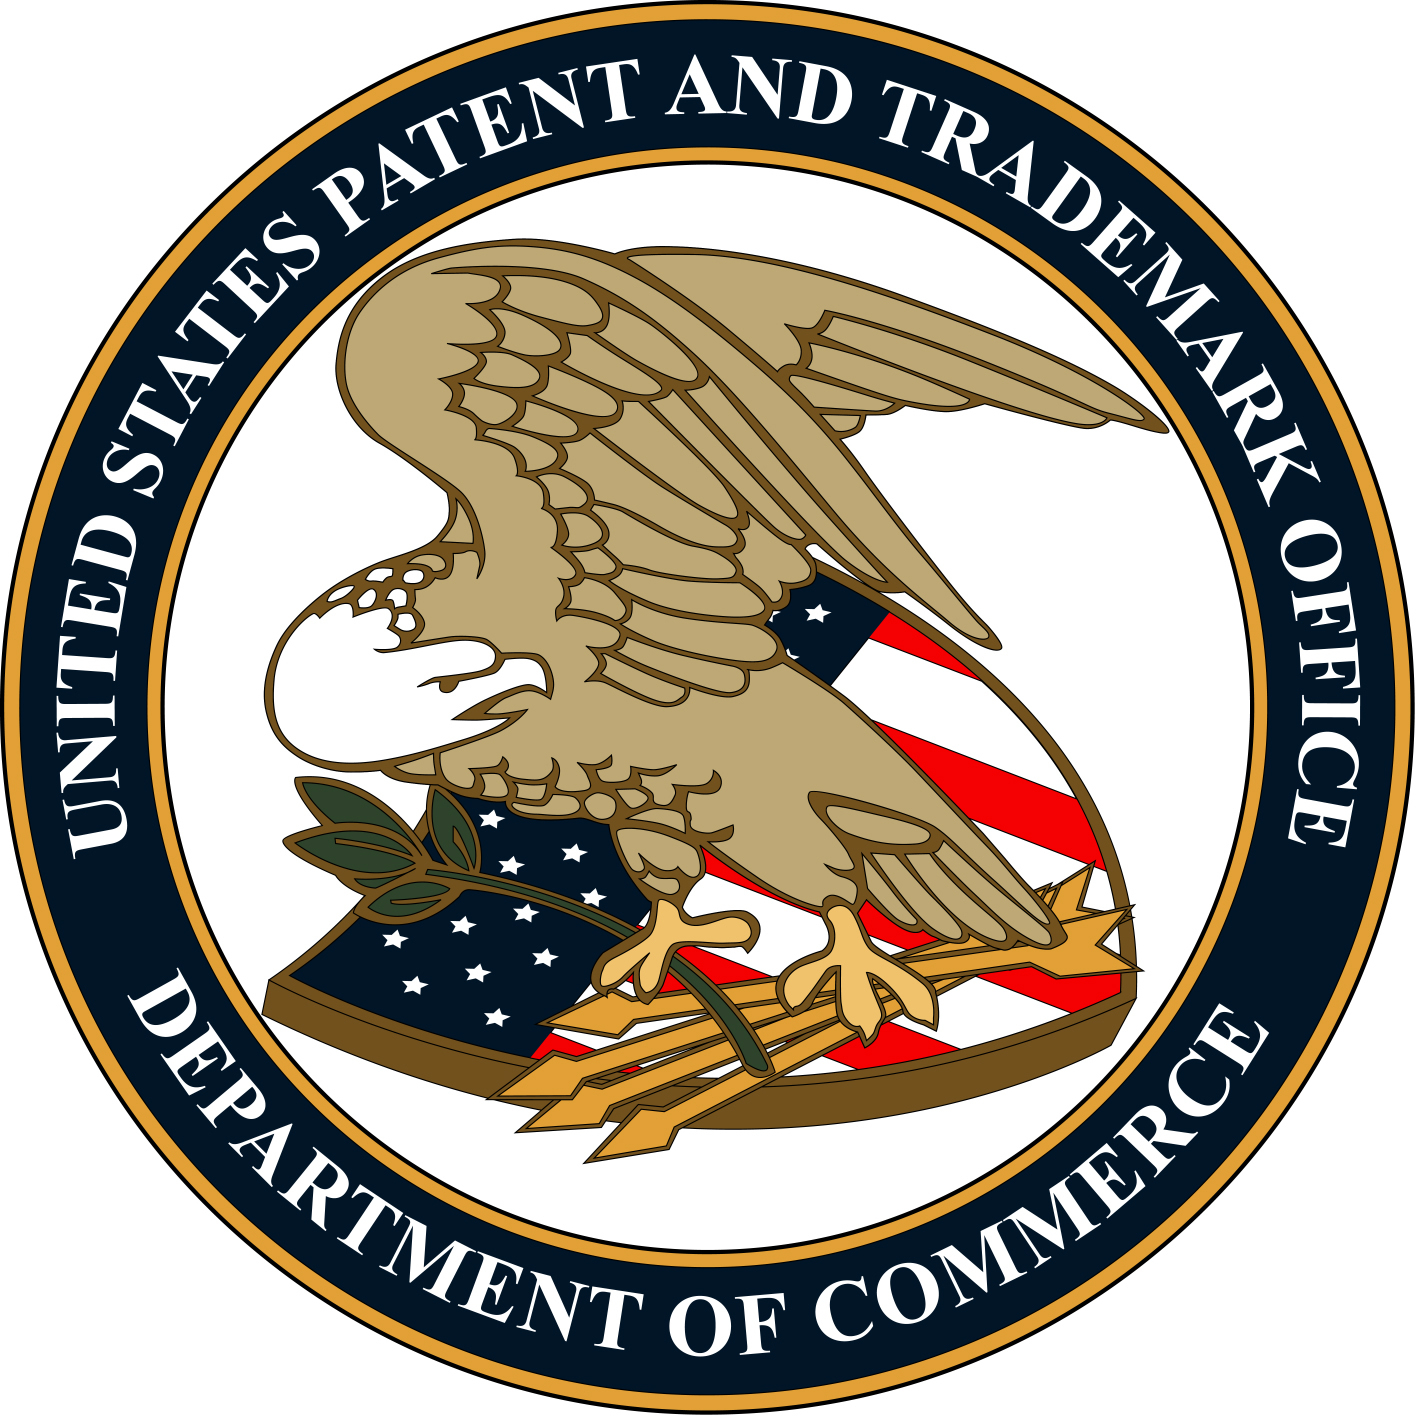 Intellectual property government information research guides registered trademarks refer to trademarks that have been registered by the united states patent and trademark office uspto and they are the only buycottarizona